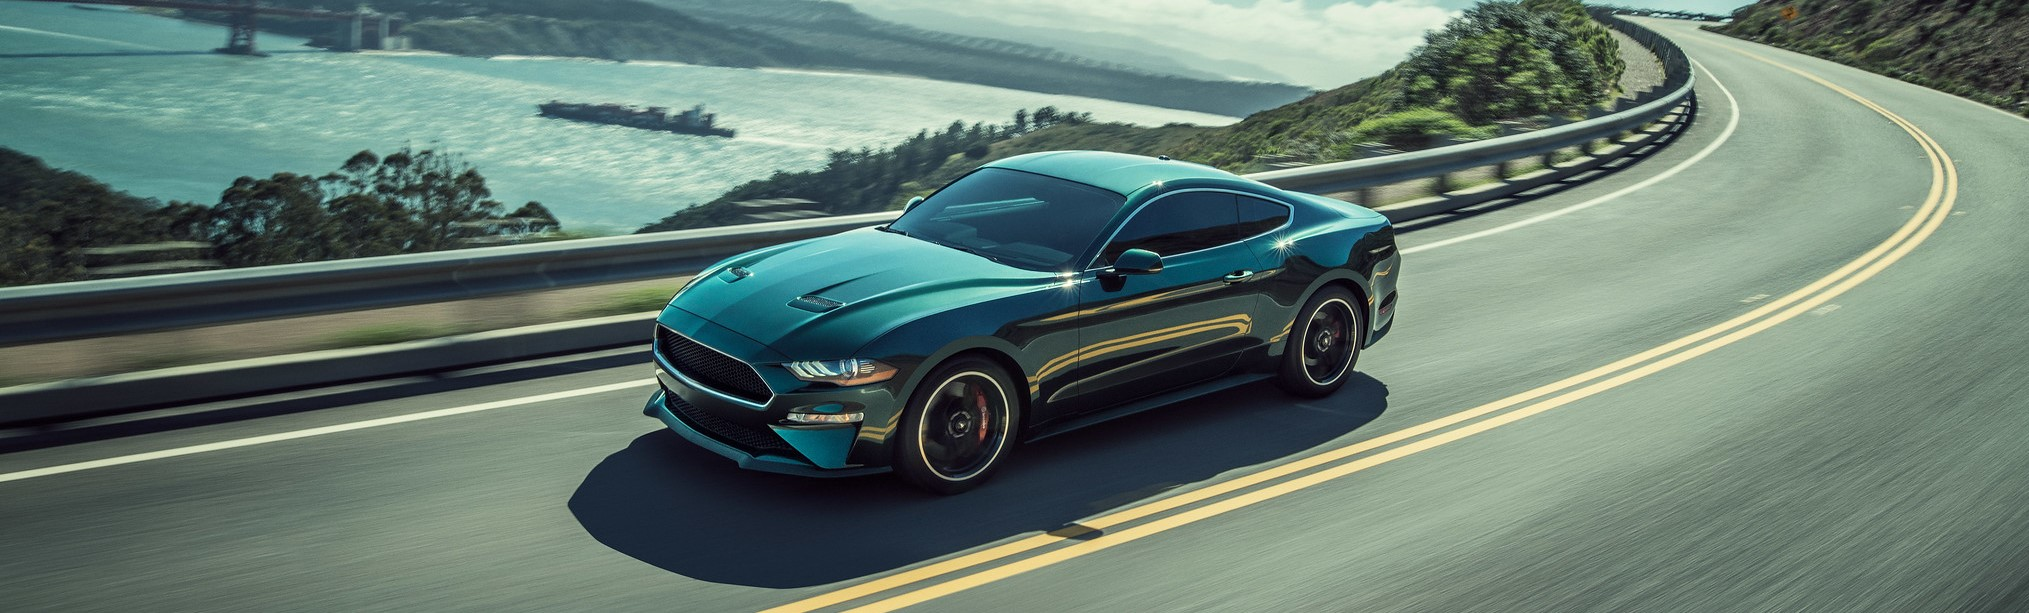 2020 Ford Mustang - Toronto, ON